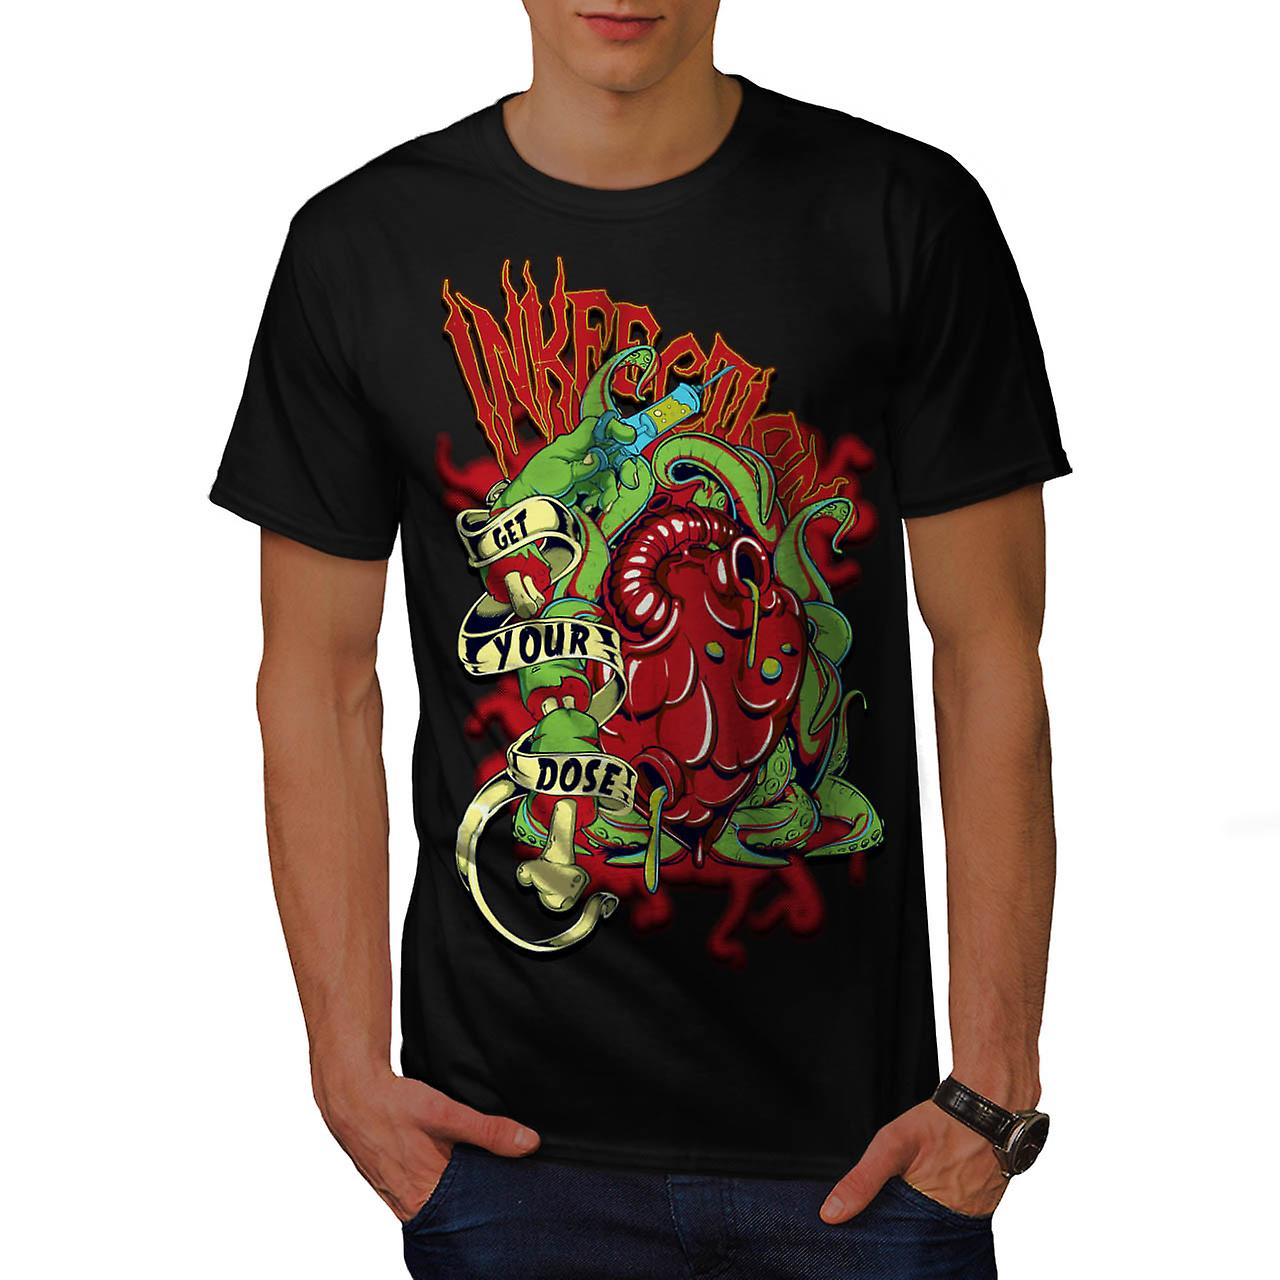 Get Your Dose Dead Horror Men Black T-shirt | Wellcoda